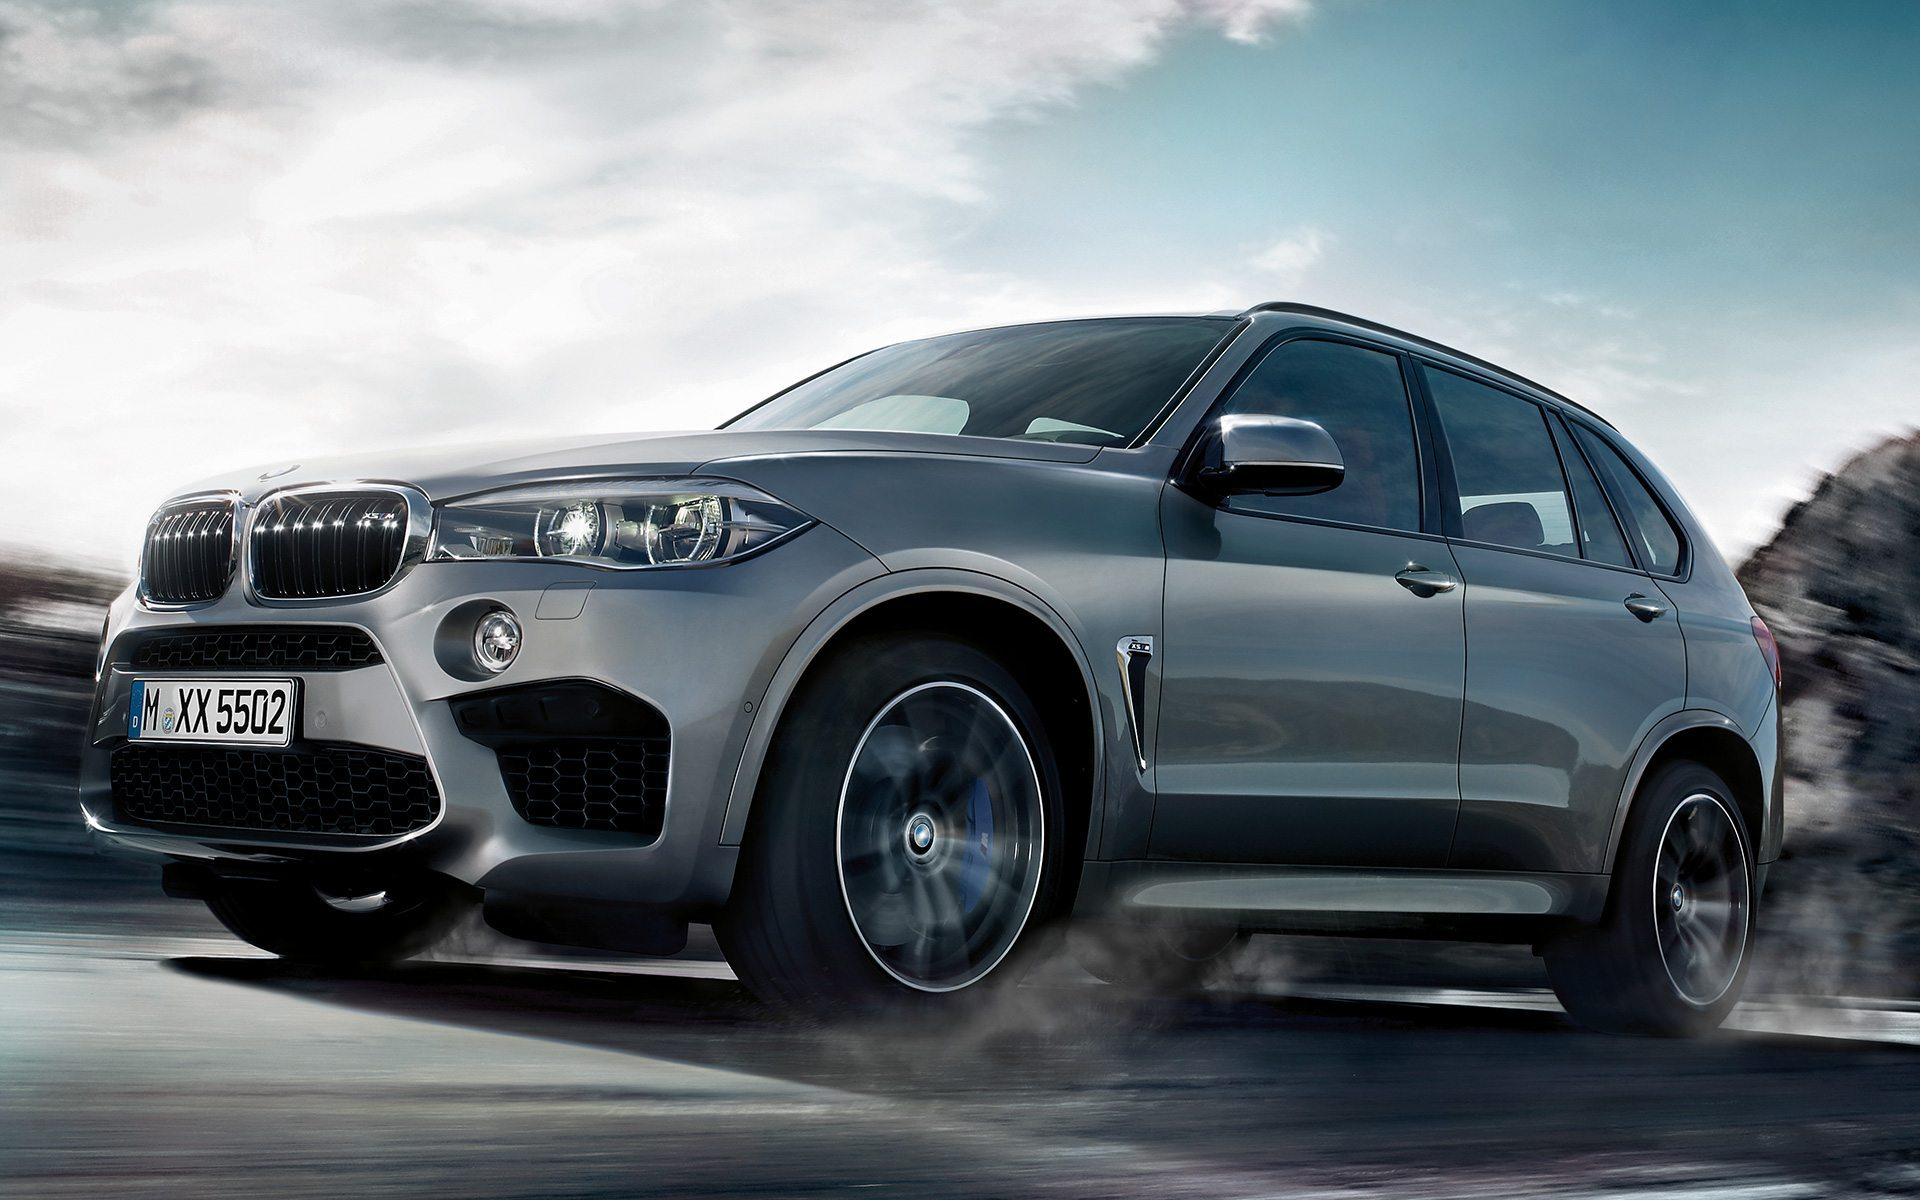 2018 BMW X5 M Exclusive Price in UAE, Specs & Review in ...